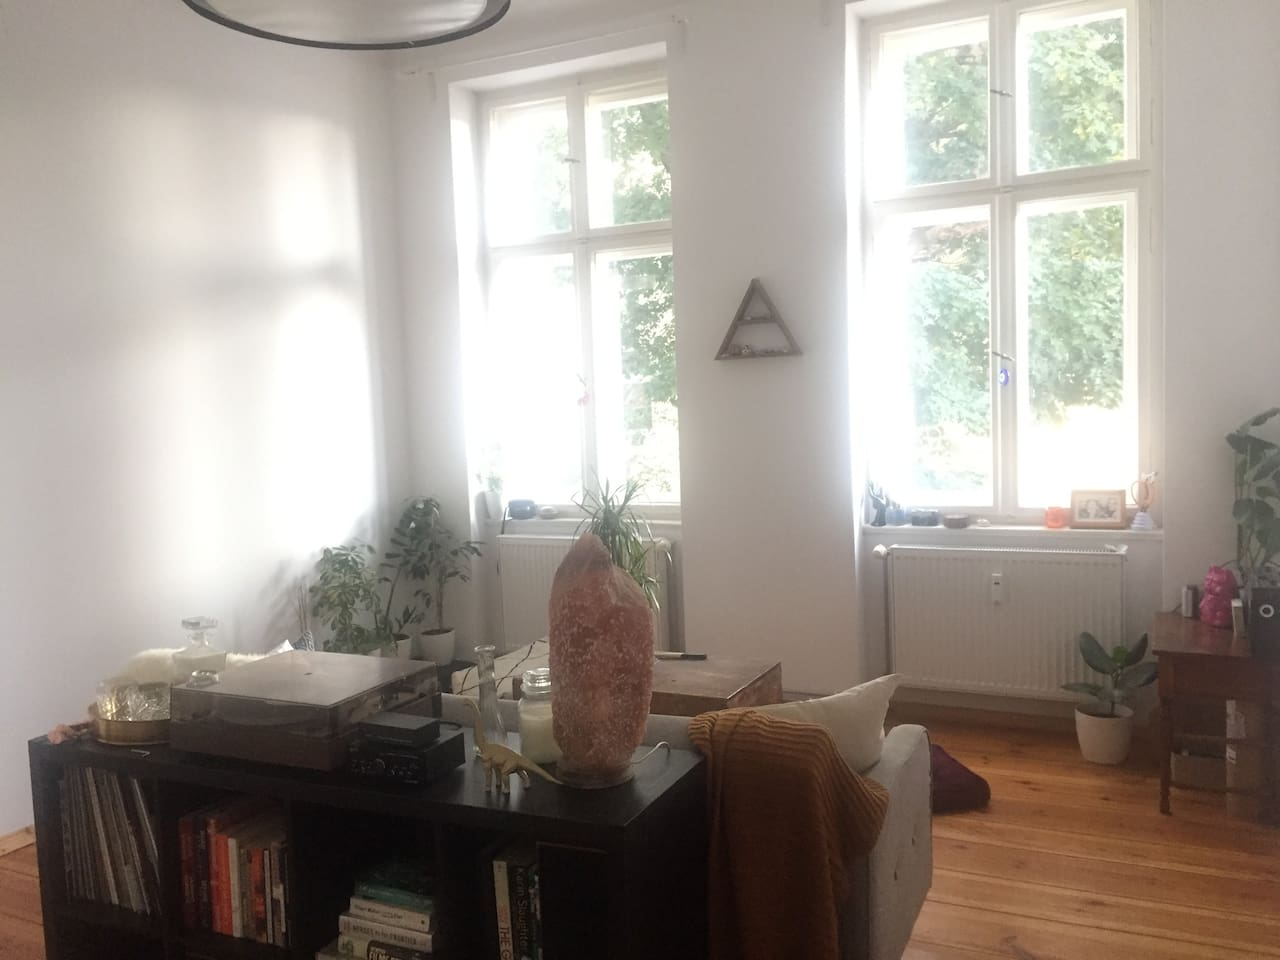 Living room area with big windows